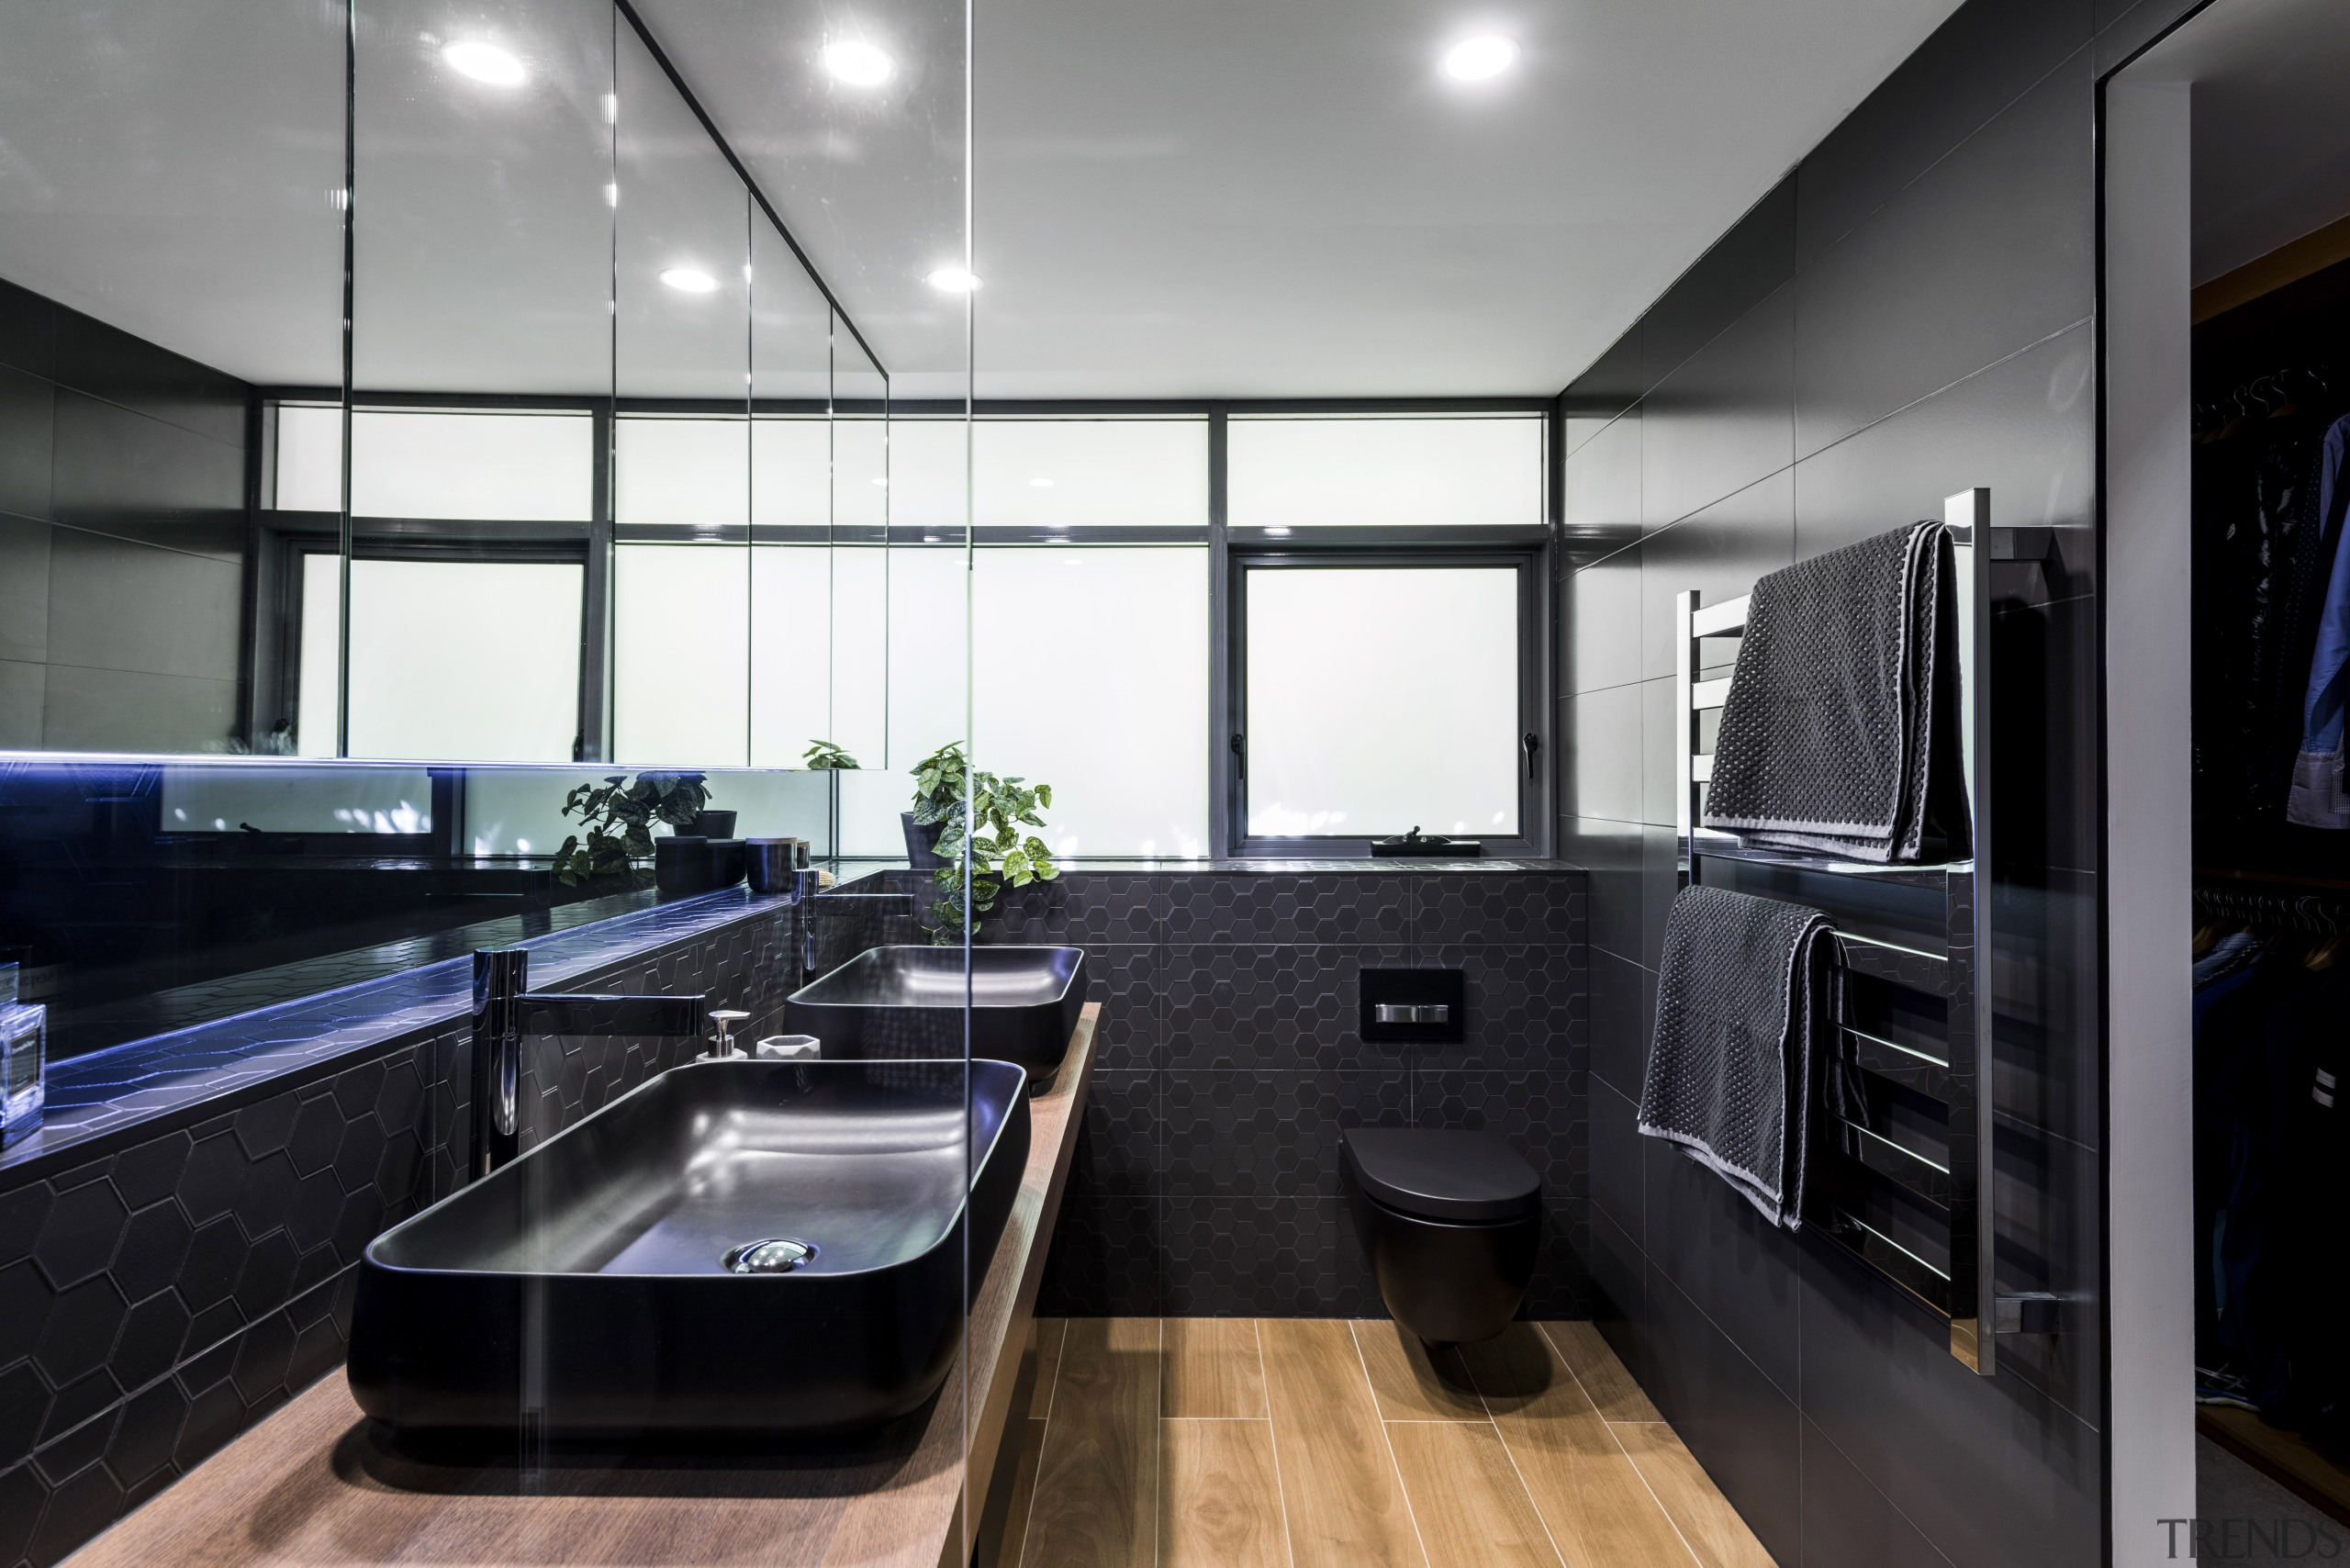 This comprehensively reinvented master ensuite in a penthouse countertop, interior design, kitchen, real estate, room, black